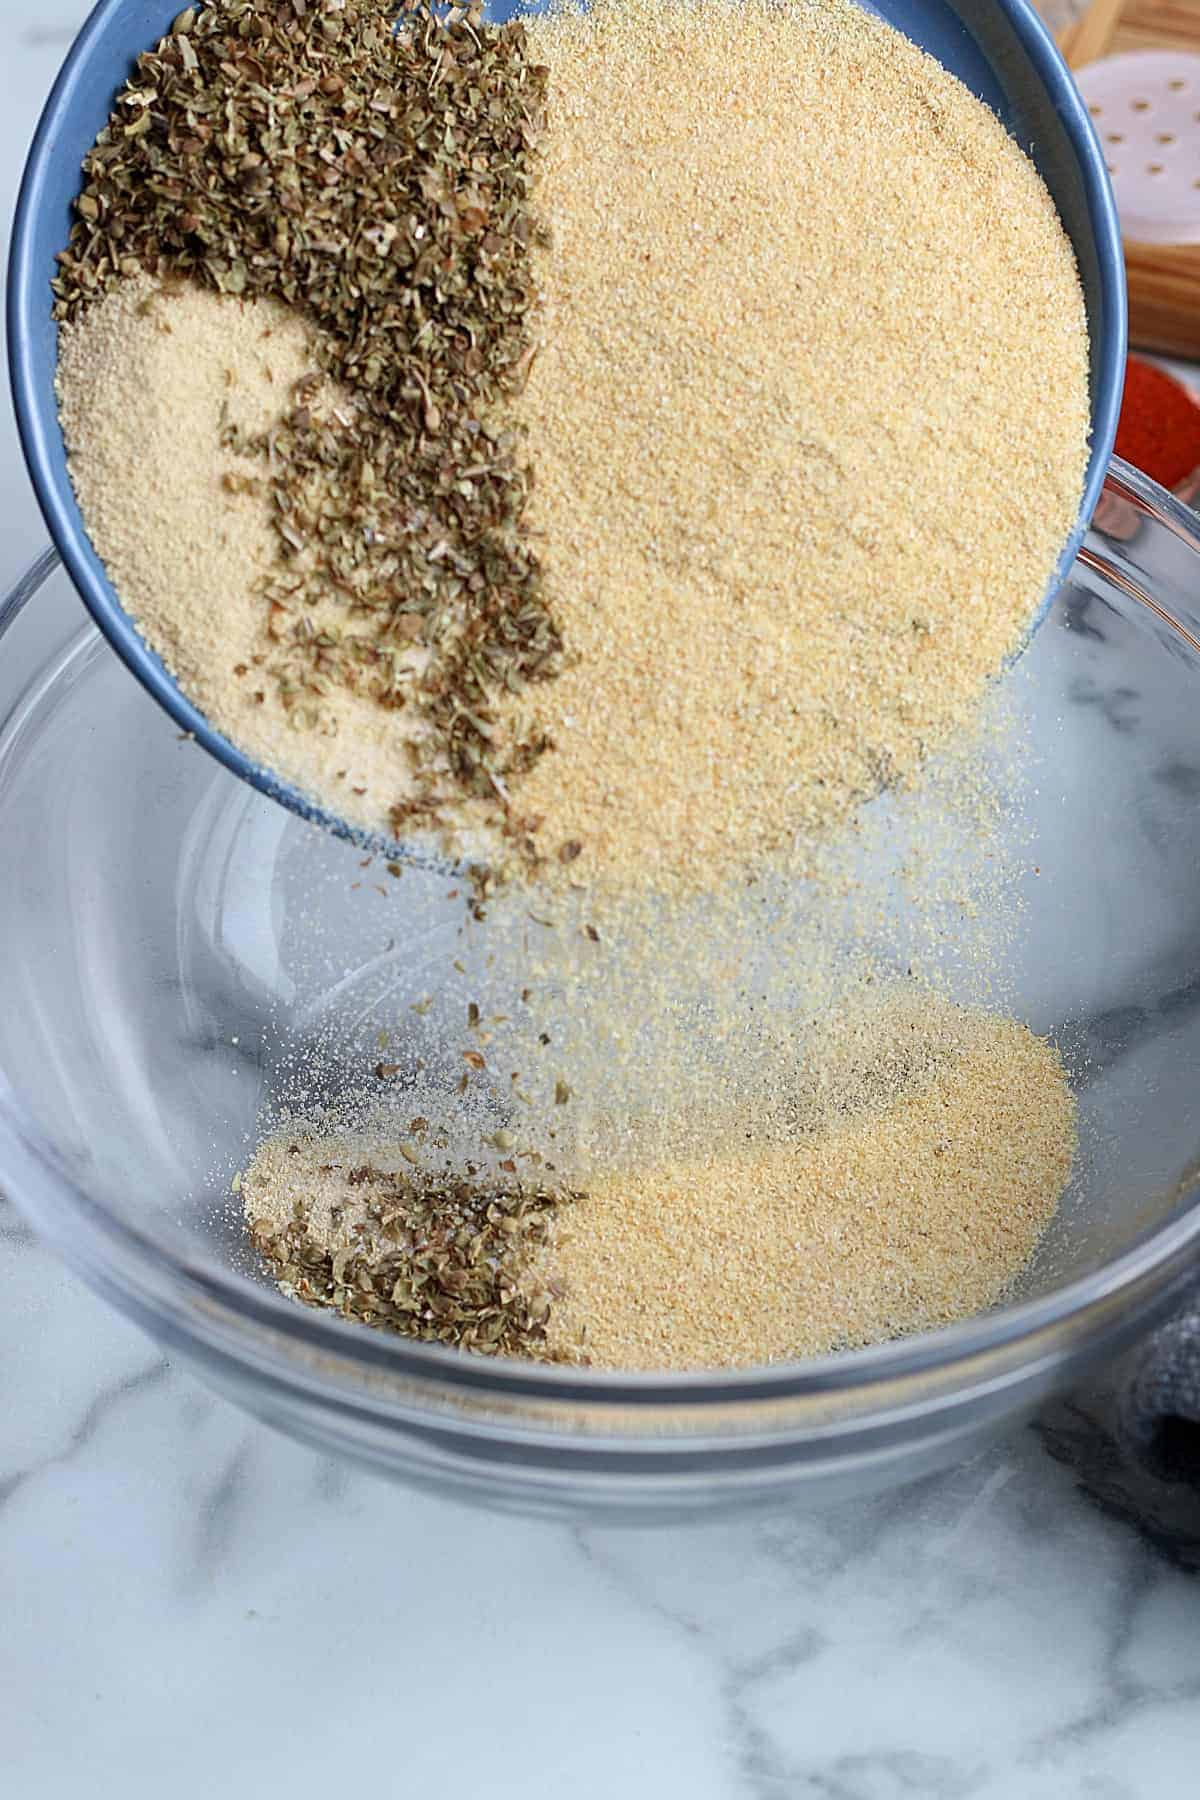 Pouring garlic, onion and oregano seasonings into a mixing bowl.